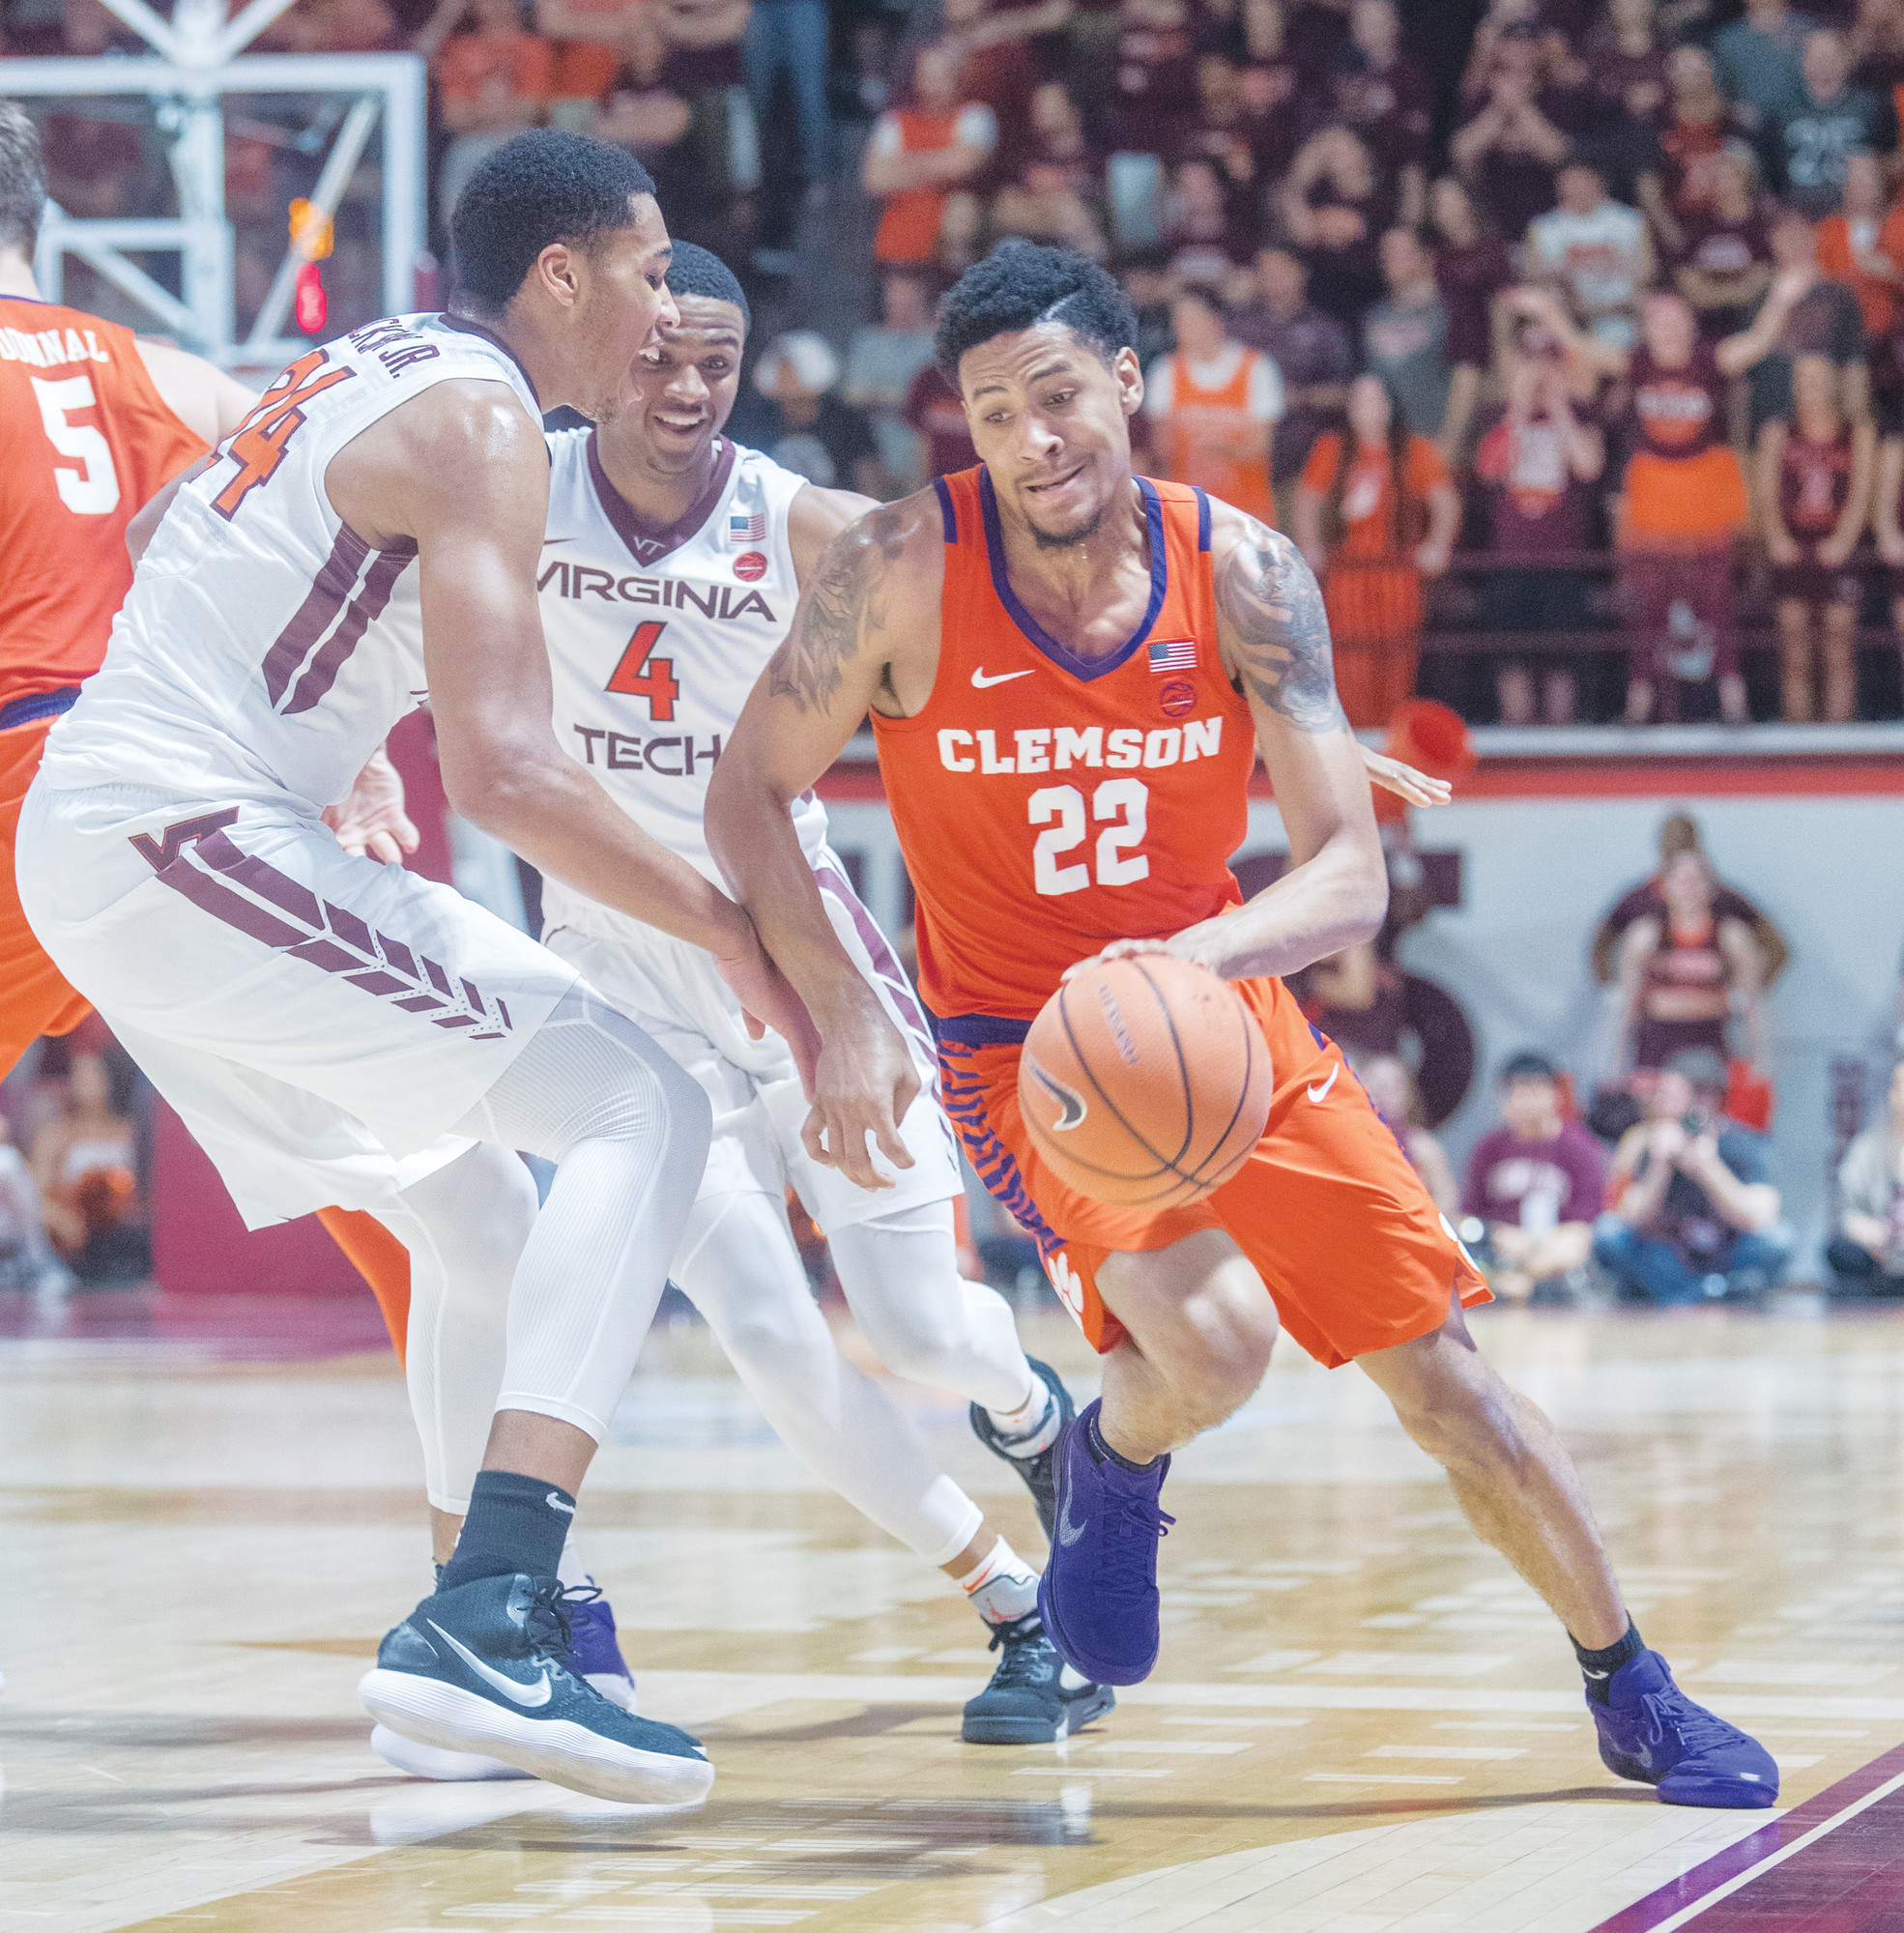 Virginia Tech forward Kerry Blackshear Jr. (24) guards Clemson guard Scott Spencer (22) during the first half of the Hokies' 65-58 victory over a reeling Clemson squad on Wednesday in Blacksburg, Virginia.